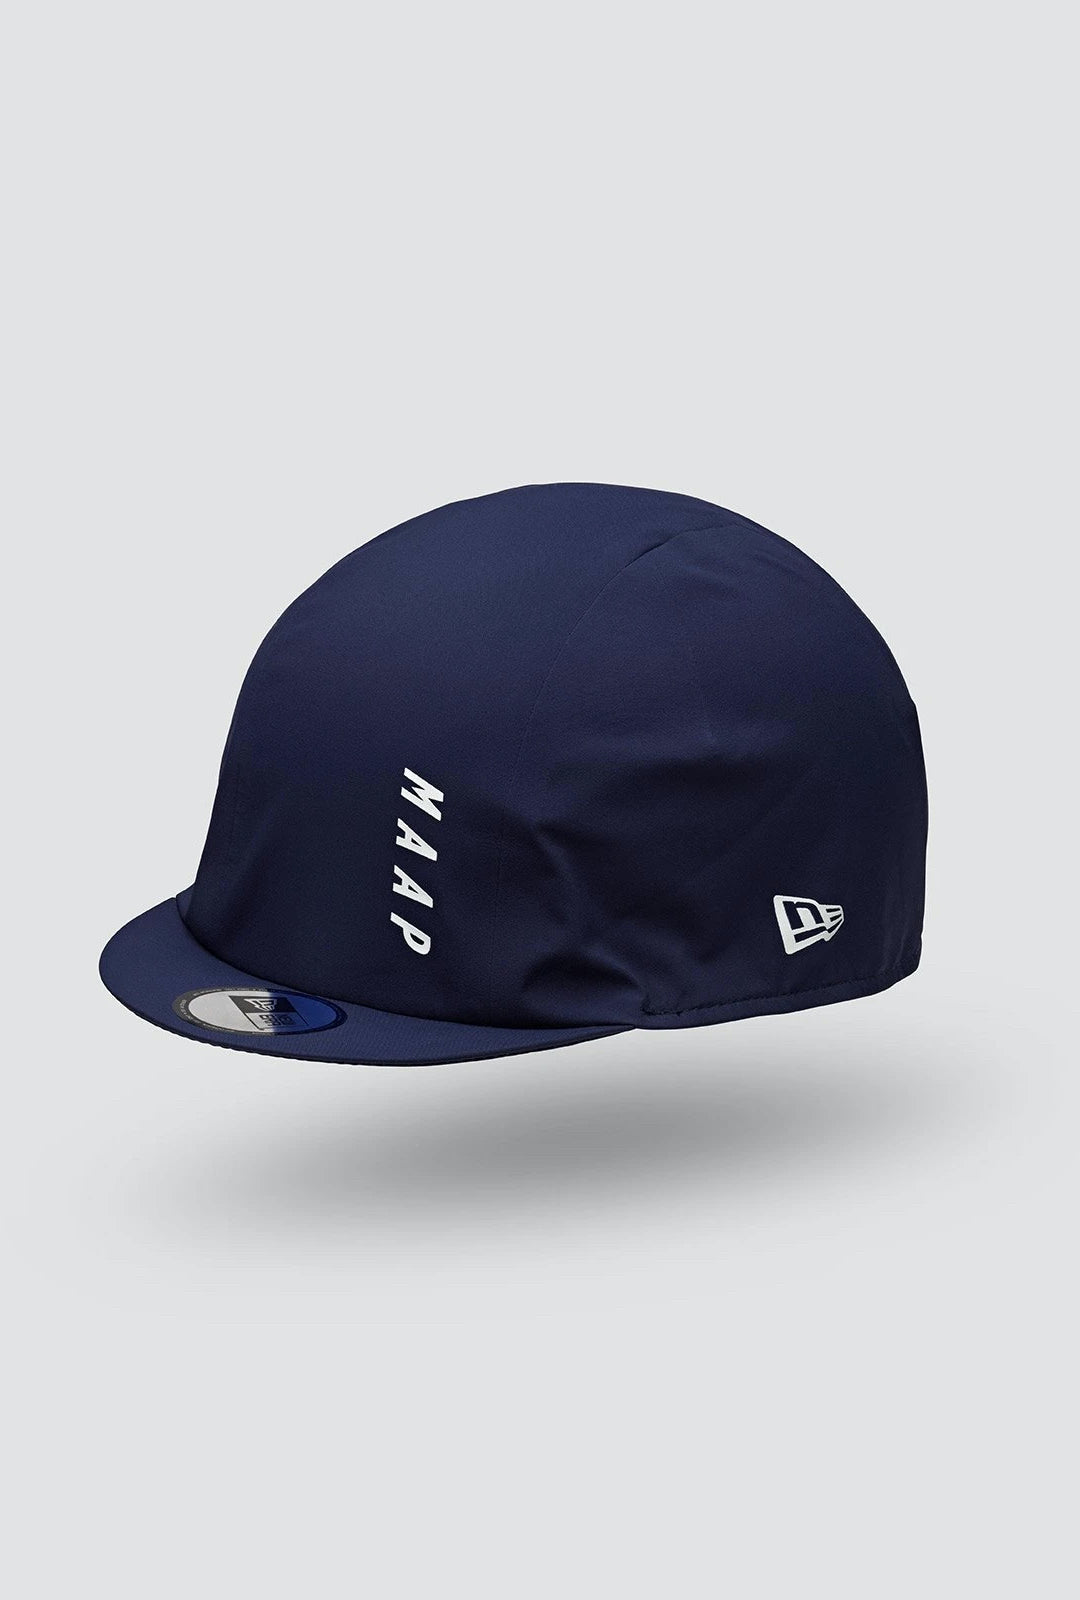 MAAP Prime New Era Blue サイクルキャップ | CYCLISM